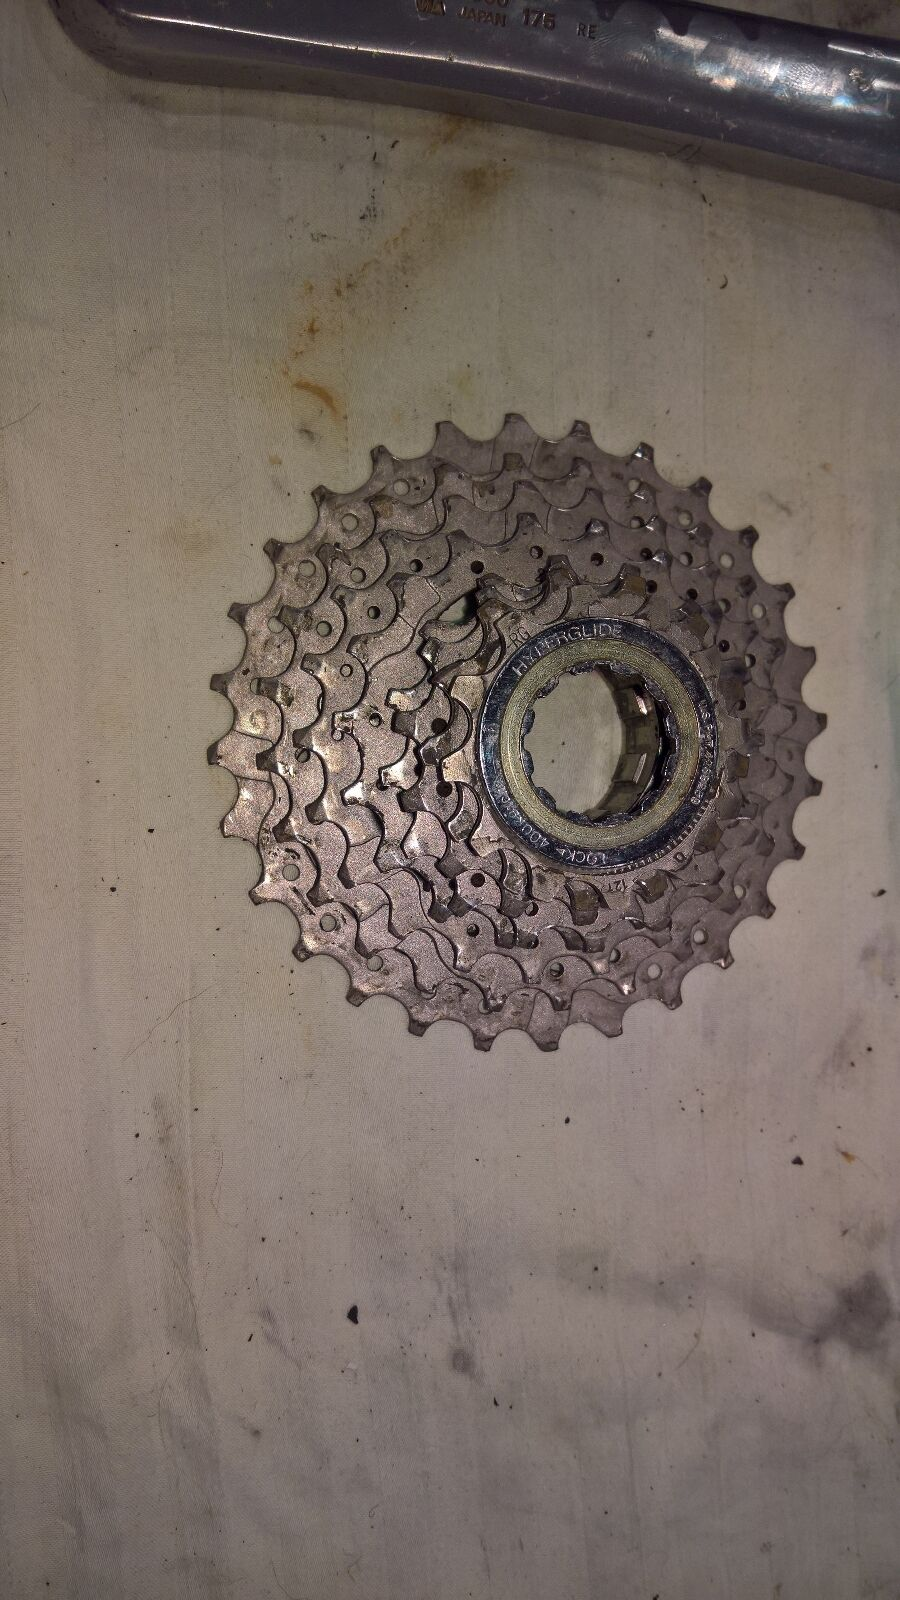 Shimano m900 12-28 tooth cassette